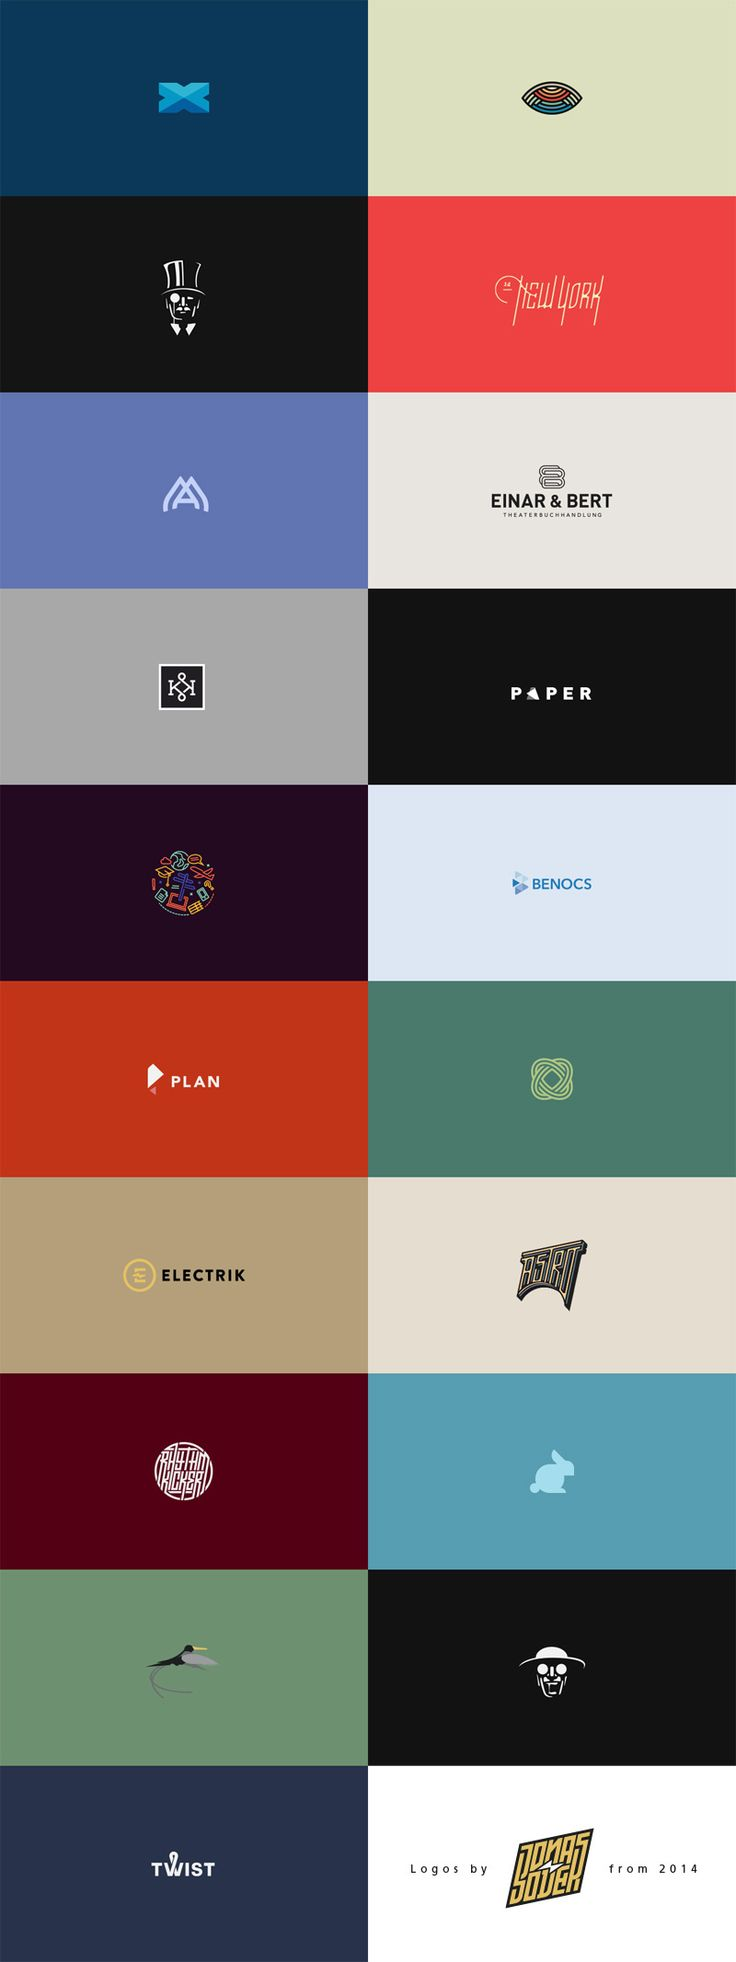 A fine selection of logos from 2014 by Jonas Söder, a Berlin, Germany based freelance graphic designer. Some weeks ago I featured a collection of simple bl